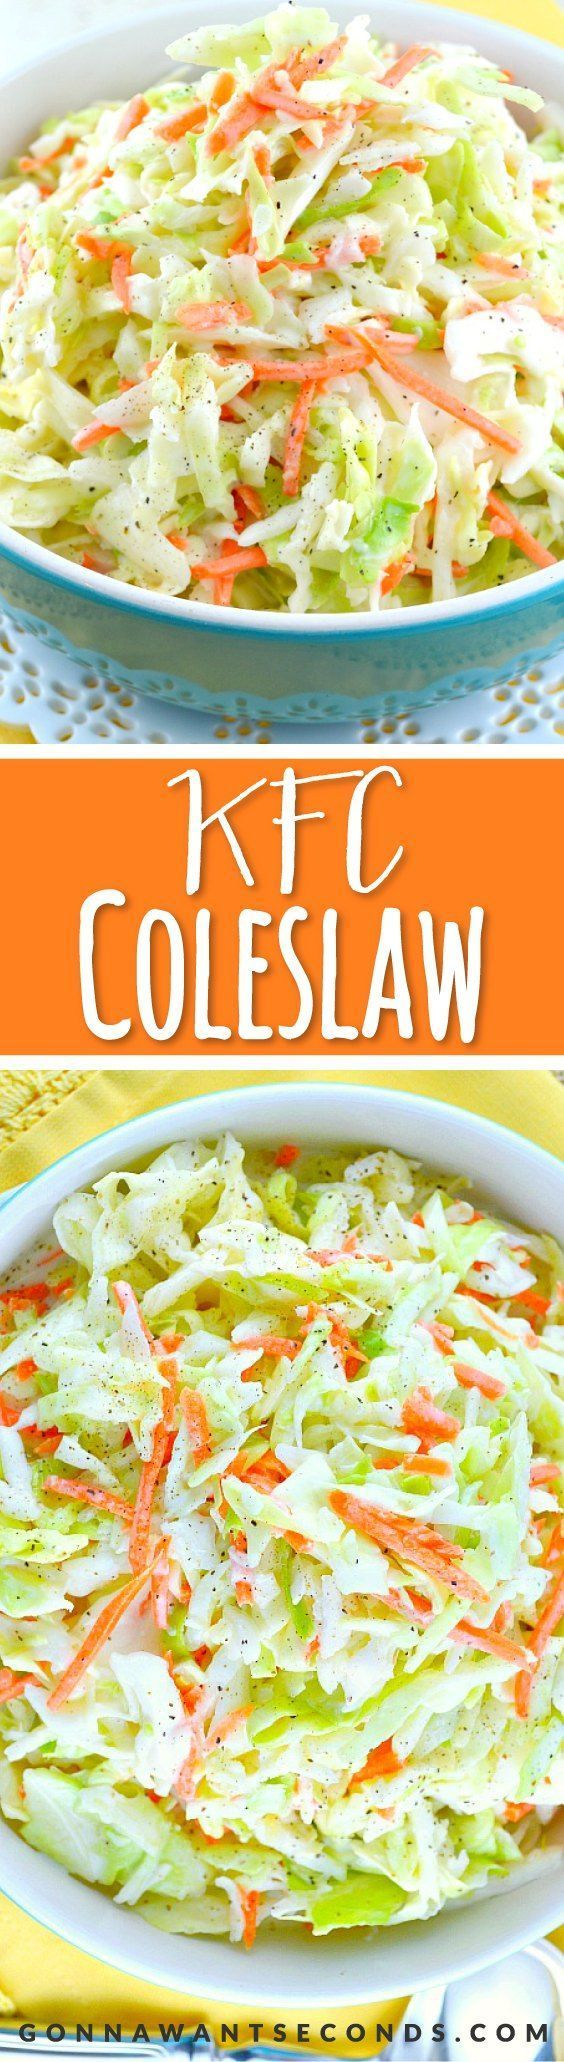 KFC-Coleslaw-Recipe. This is an amazing copycat version of the famous KFC Coleslaw Recipe. It's sweet, a little tangy and fabulously creamy! My all-time favorite coleslaw recipe!